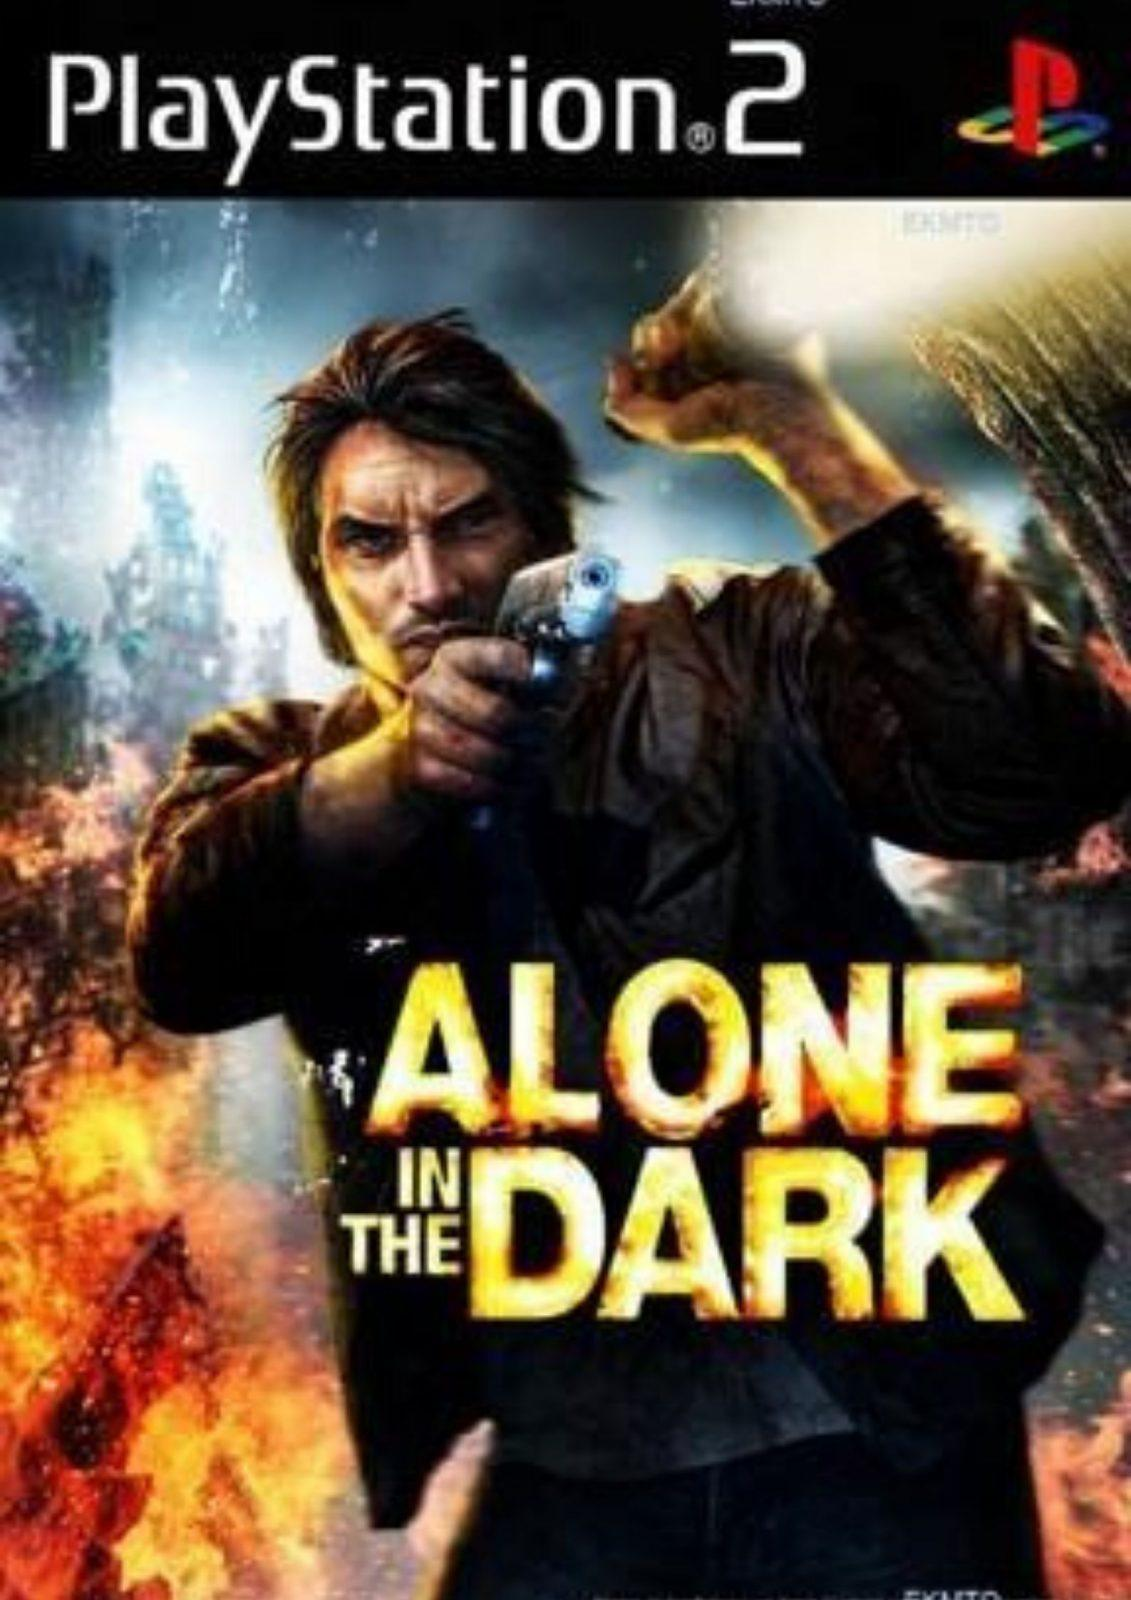 Alone In The Dark Playstation 2 Affordable Gaming Cape Town